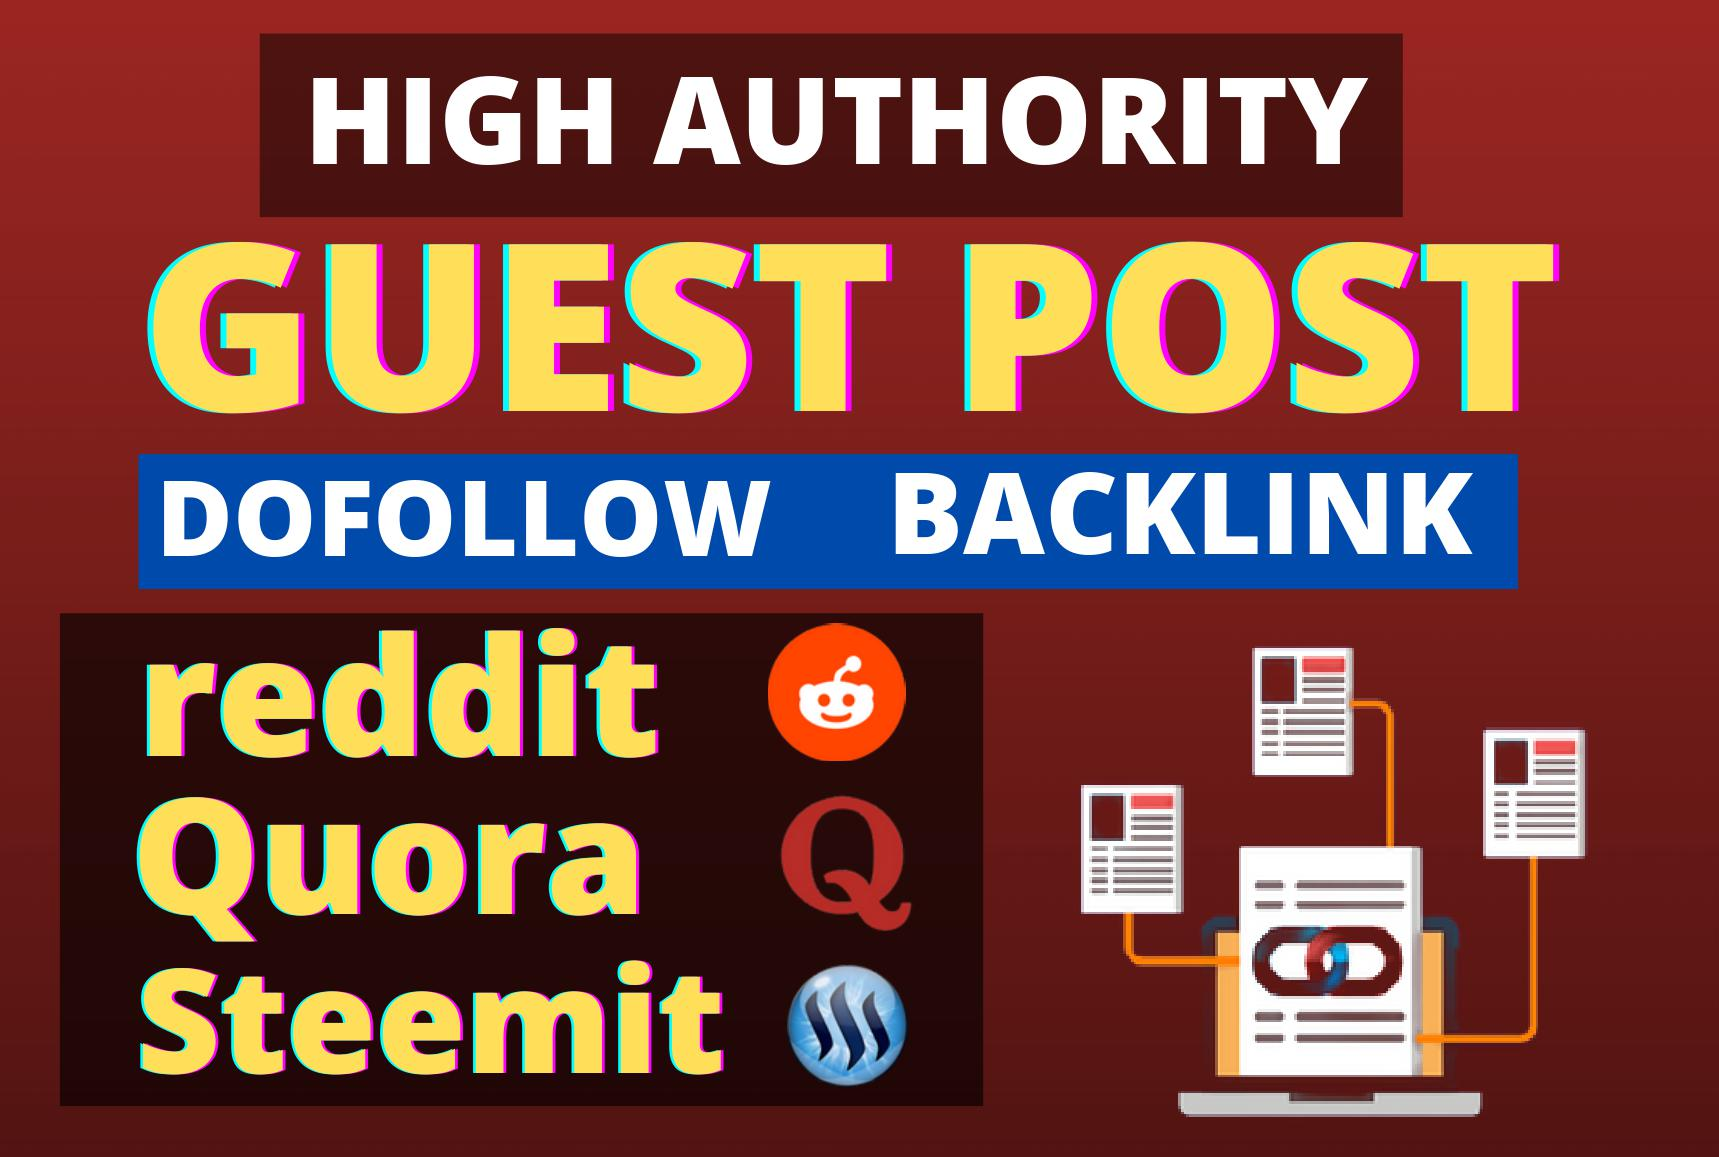 I'll Write and Publish High Quality 03 Guest Post on Quora, reddit, steemit with Natural Backlinks